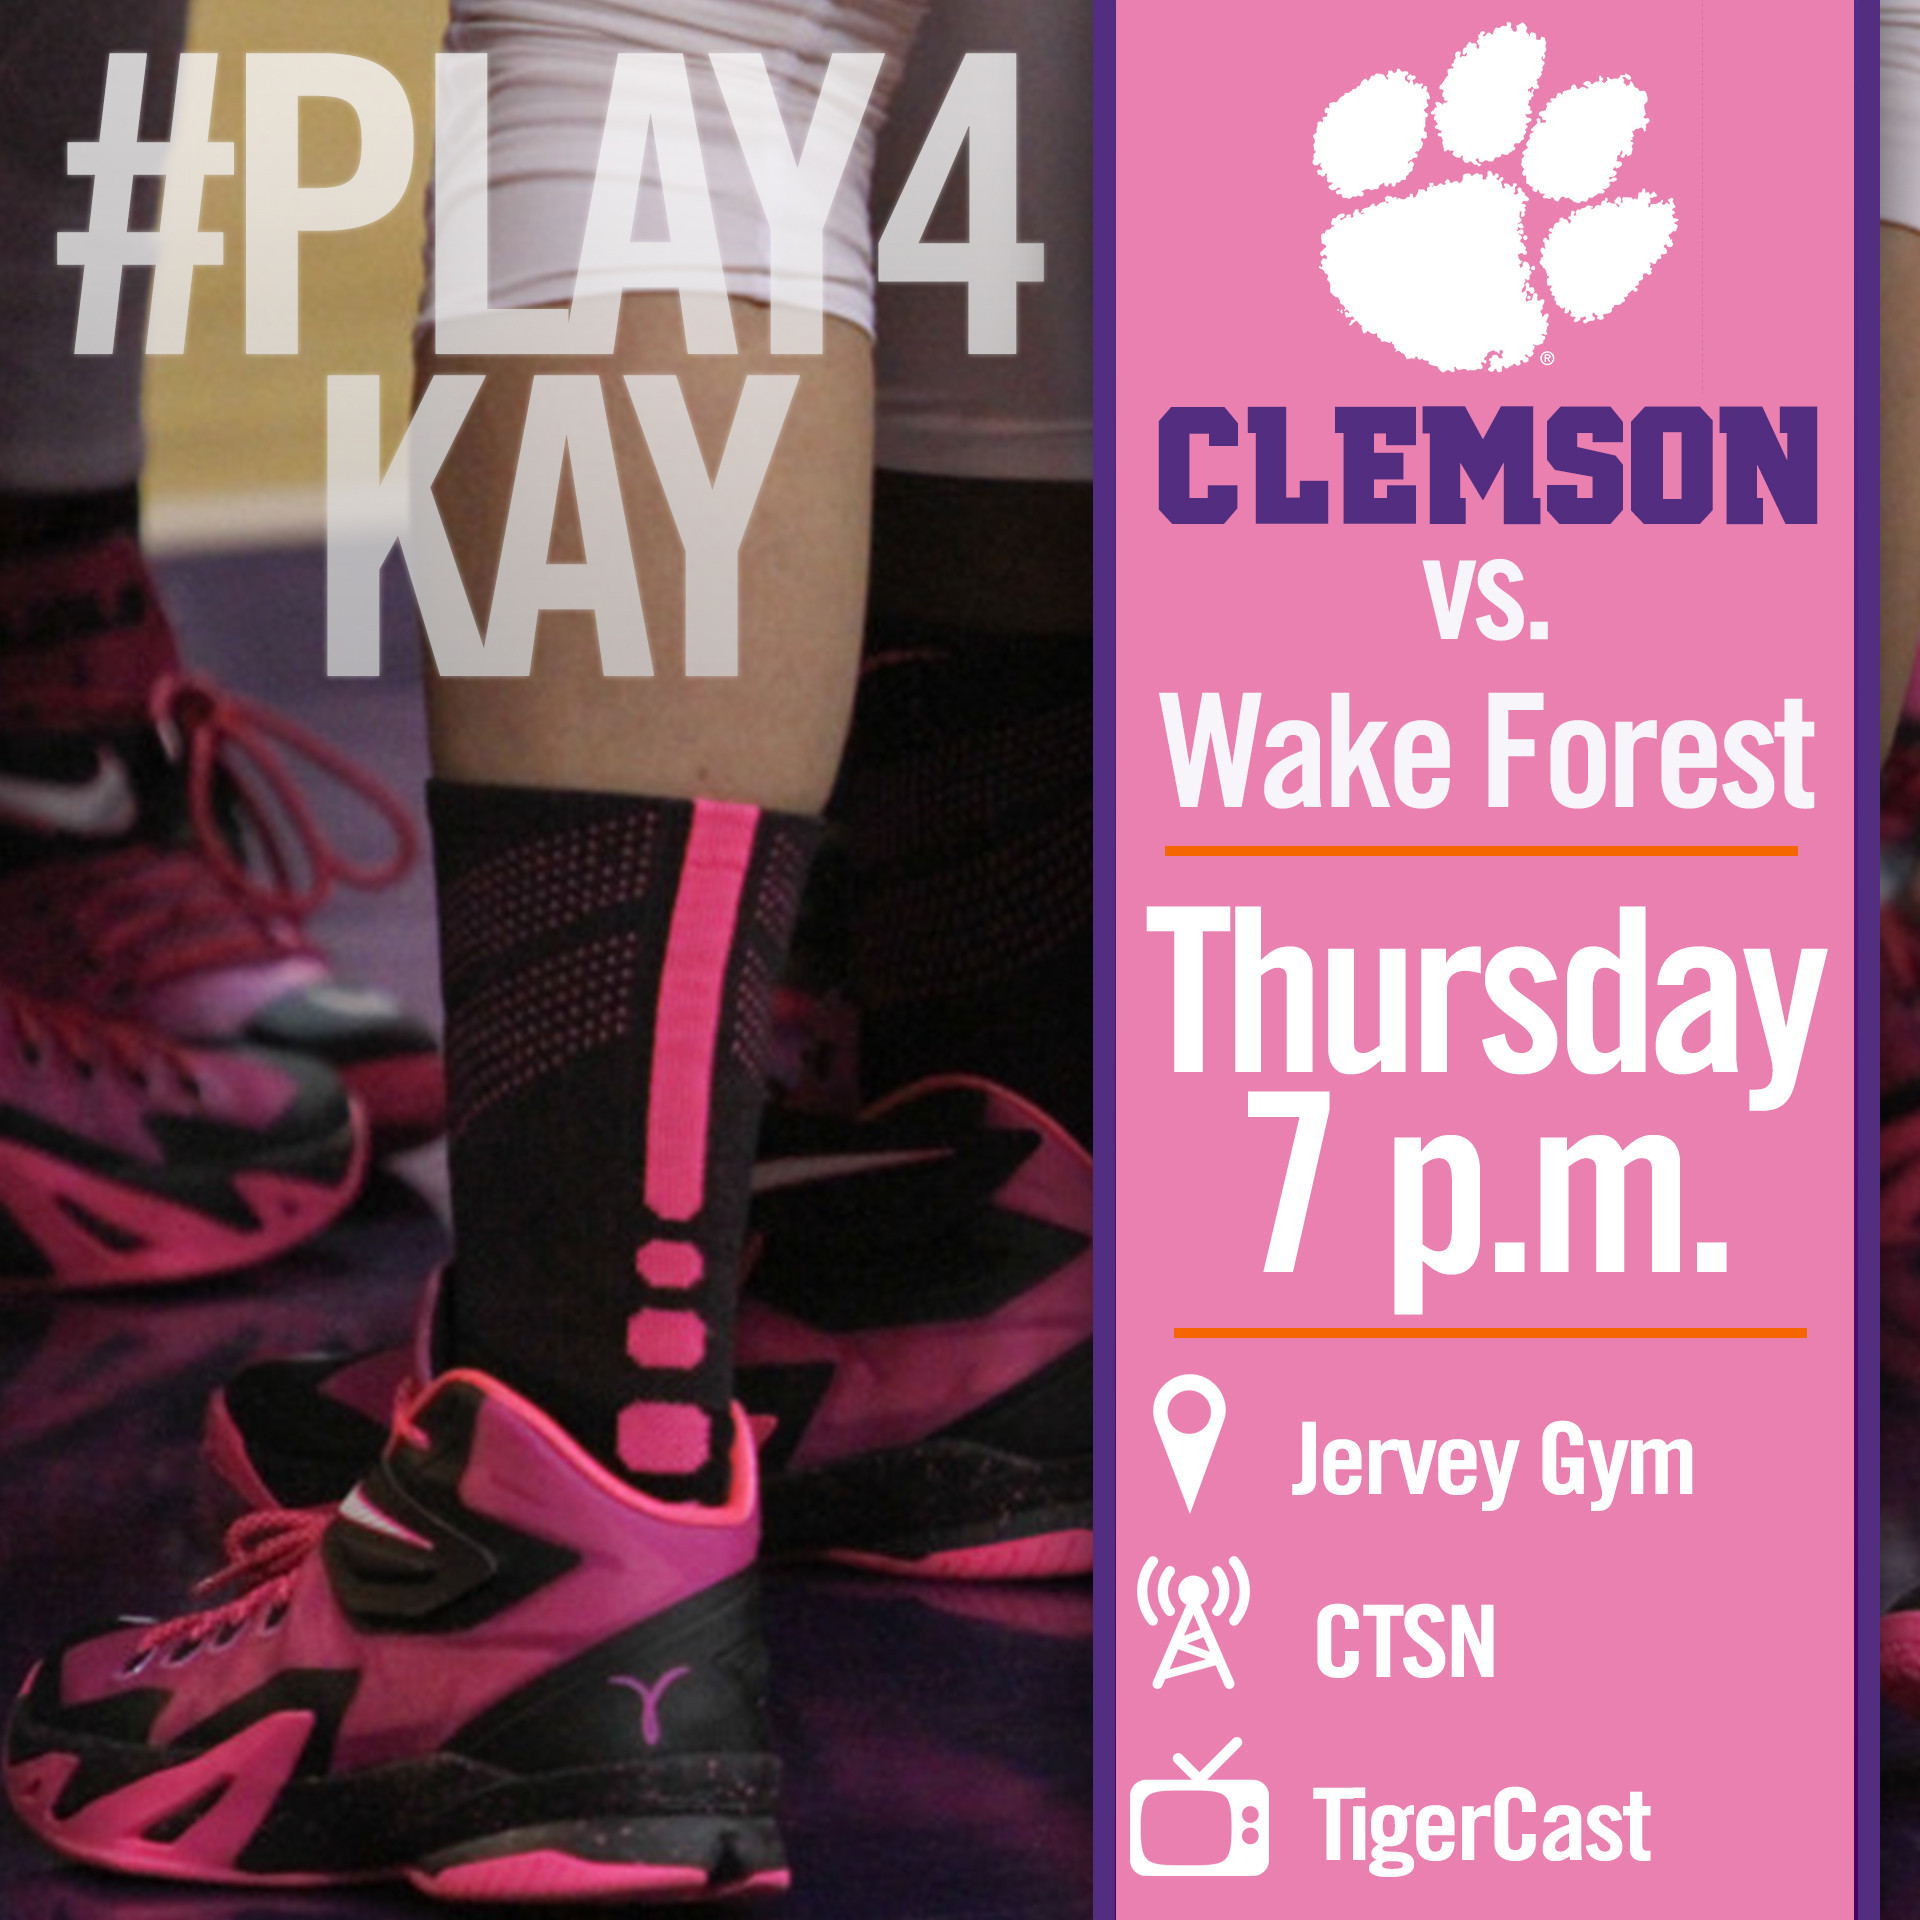 Clemson Hosts Wake Forest in #Play4Kay Game